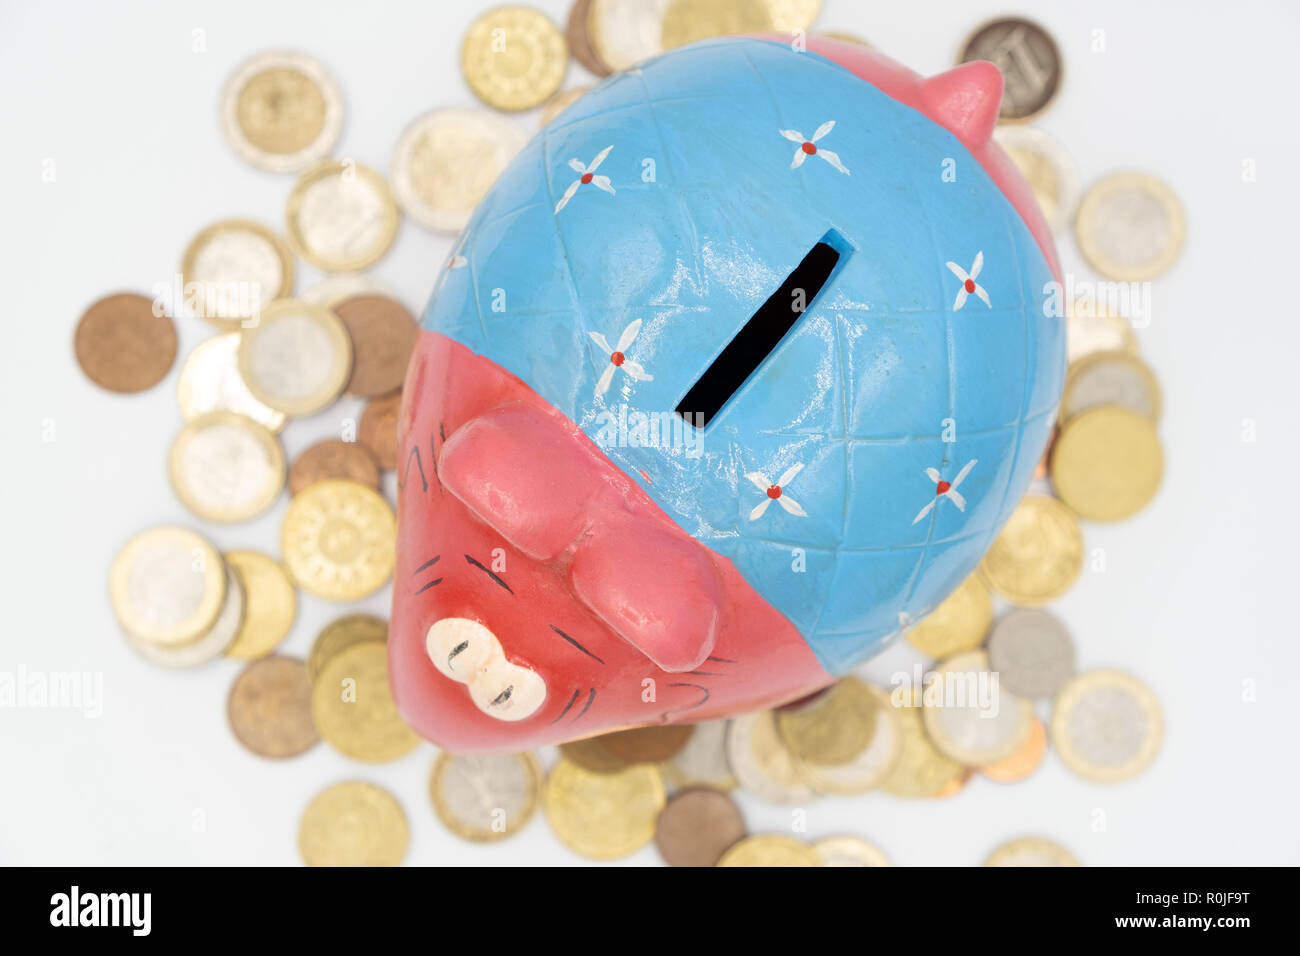 Colorful cute ceramic elephant piggy bank cut out isolated on white background Stock Photo